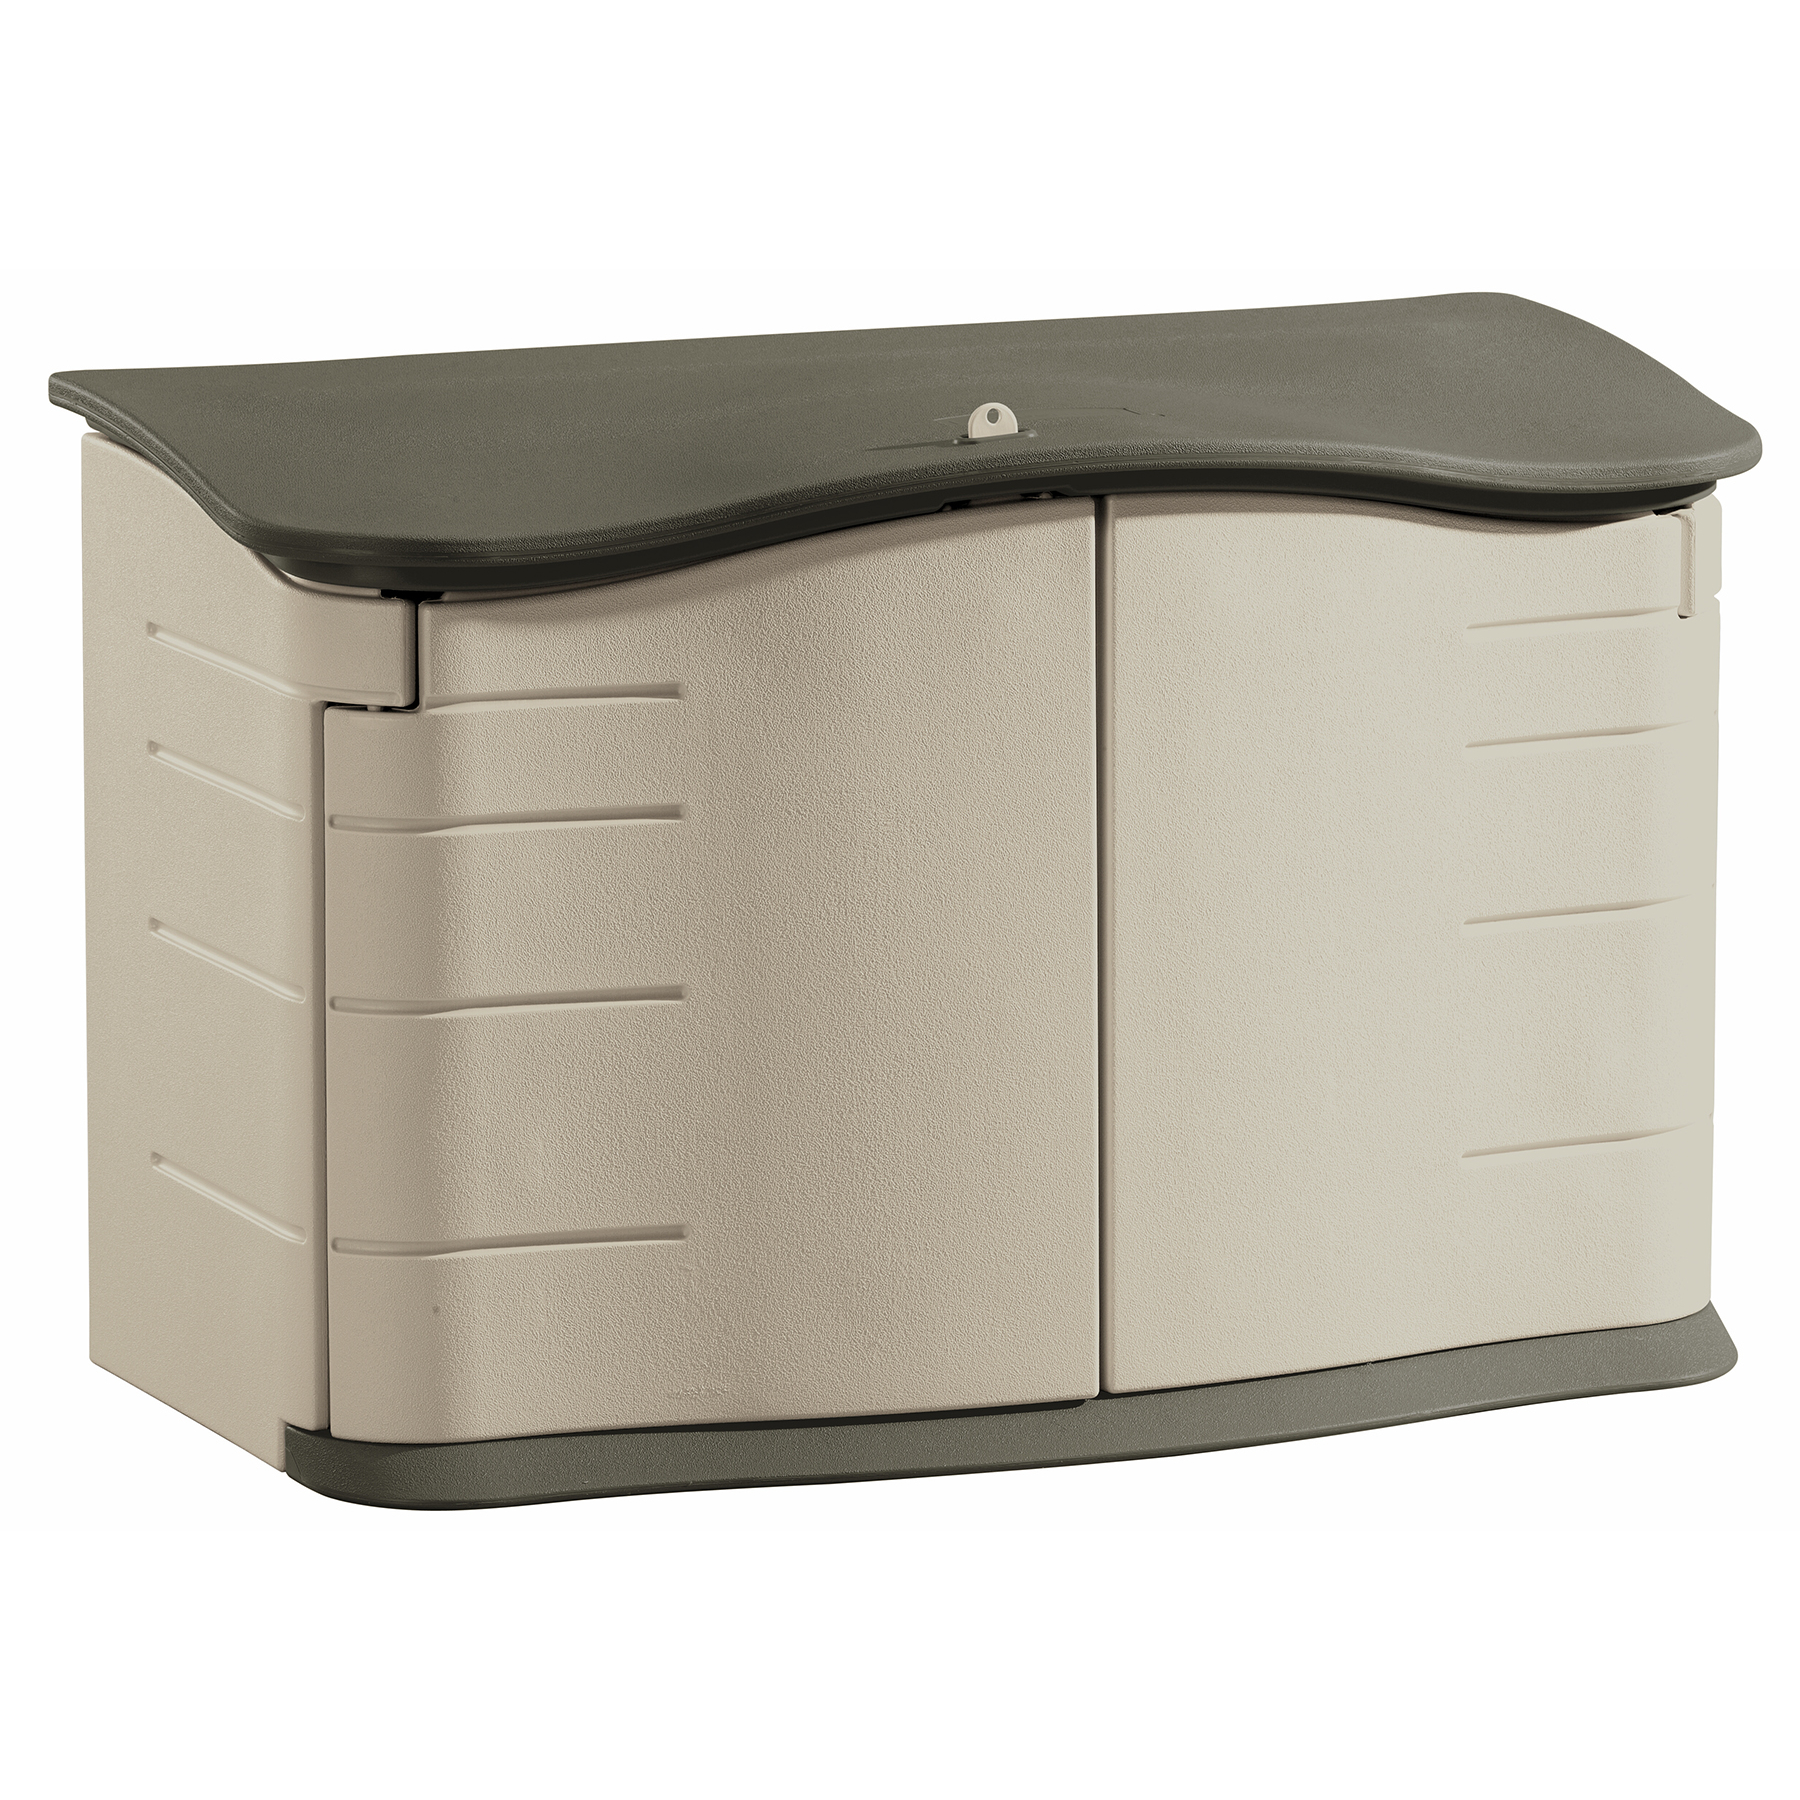 Rubbermaid Horizontal Storage Shed, Olive & Sandstone by Rubbermaid Home Products